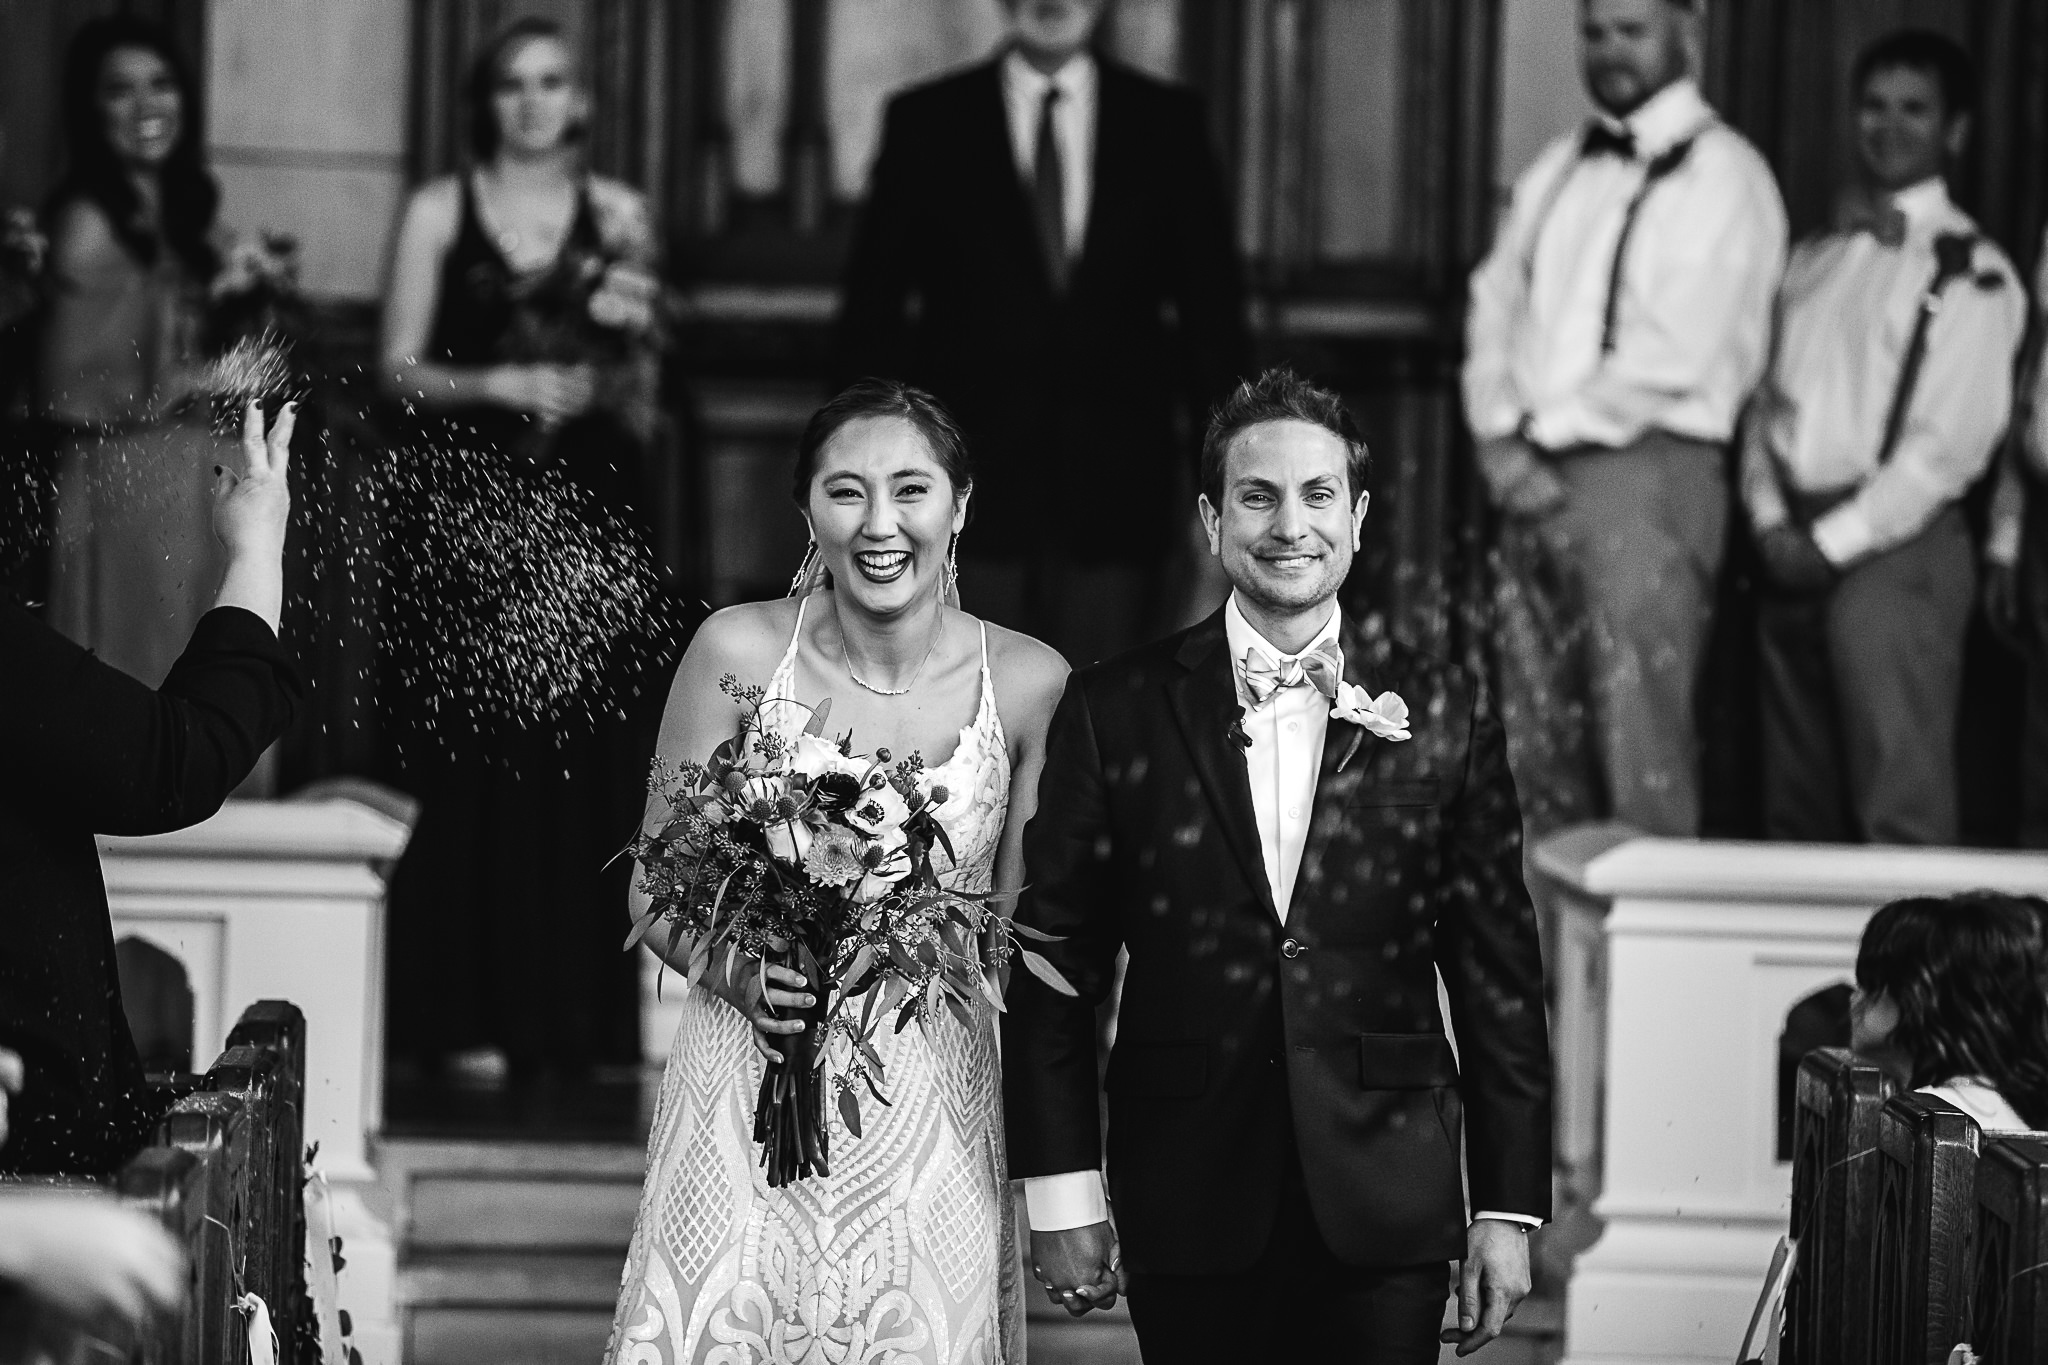 chattanooga-wedding-photographers-thewarmtharoundyou-waterhouse-pavilion-patten-chapel-wedding-sam-dusty (43 of 99).jpg